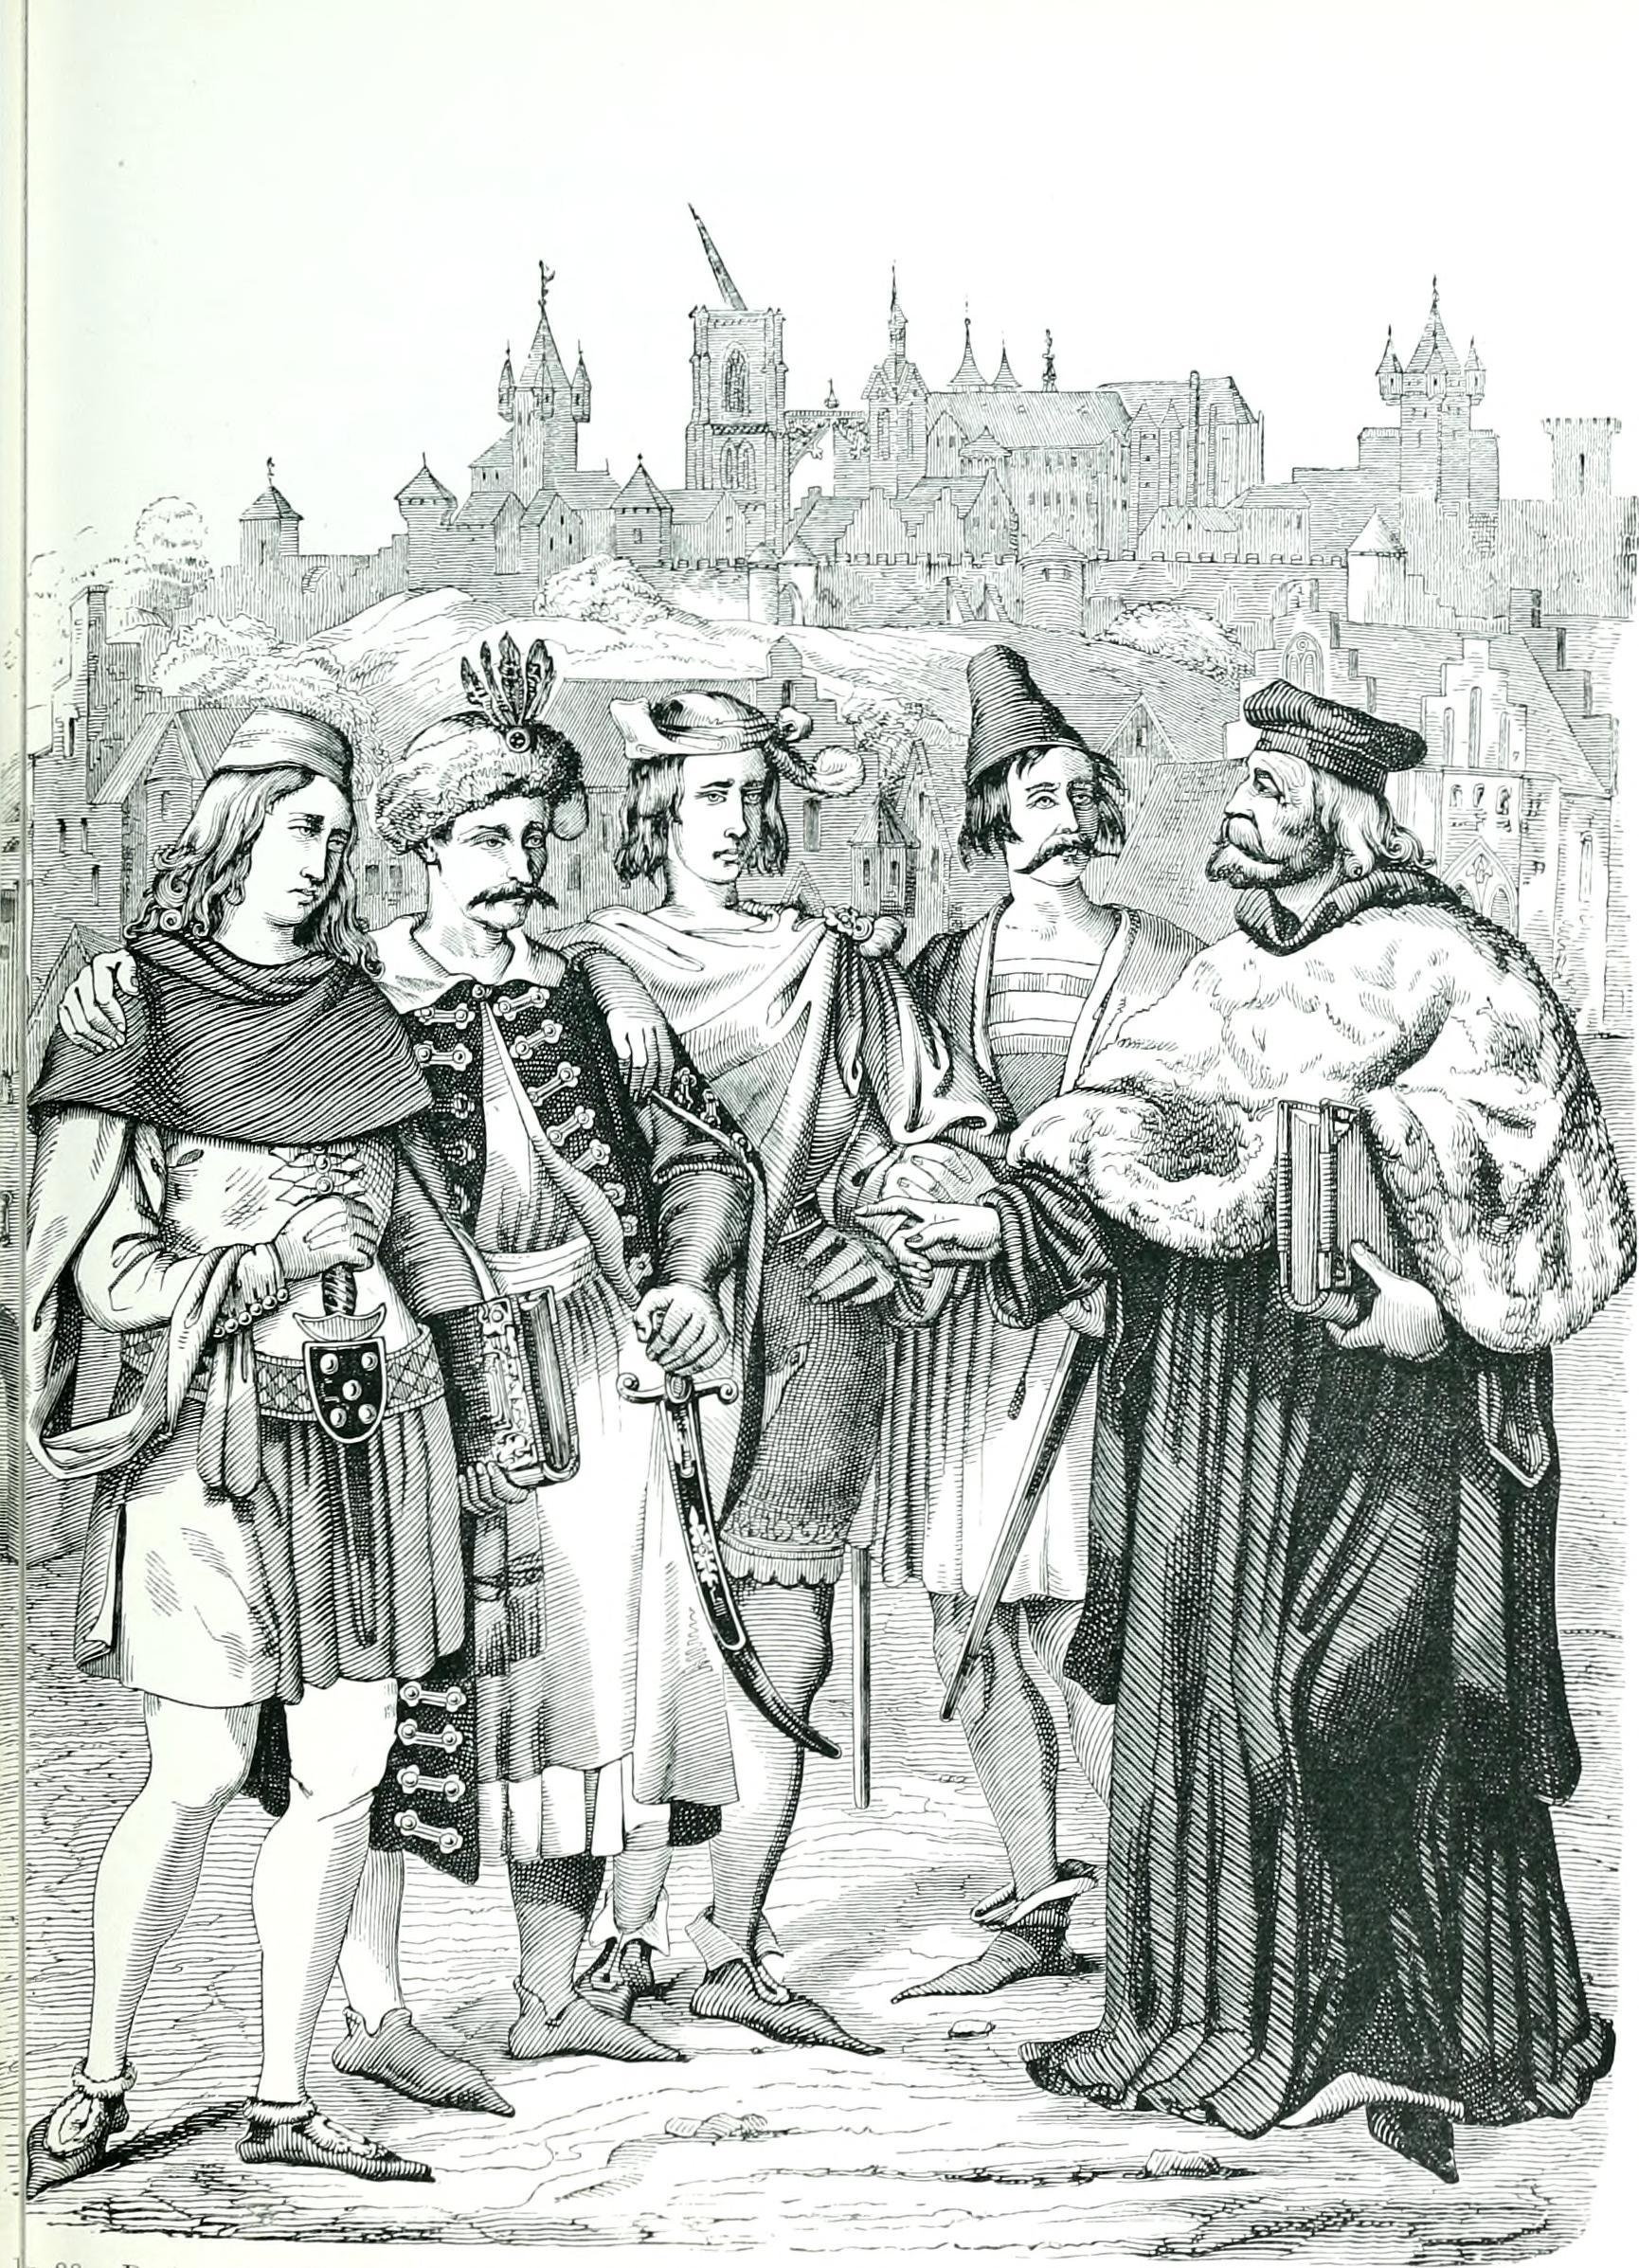 Science and literature in the Middle Ages and the Renaissance (1878) (14784561353).jpg English: Identifier: sciliteratur00jaco (find matches)